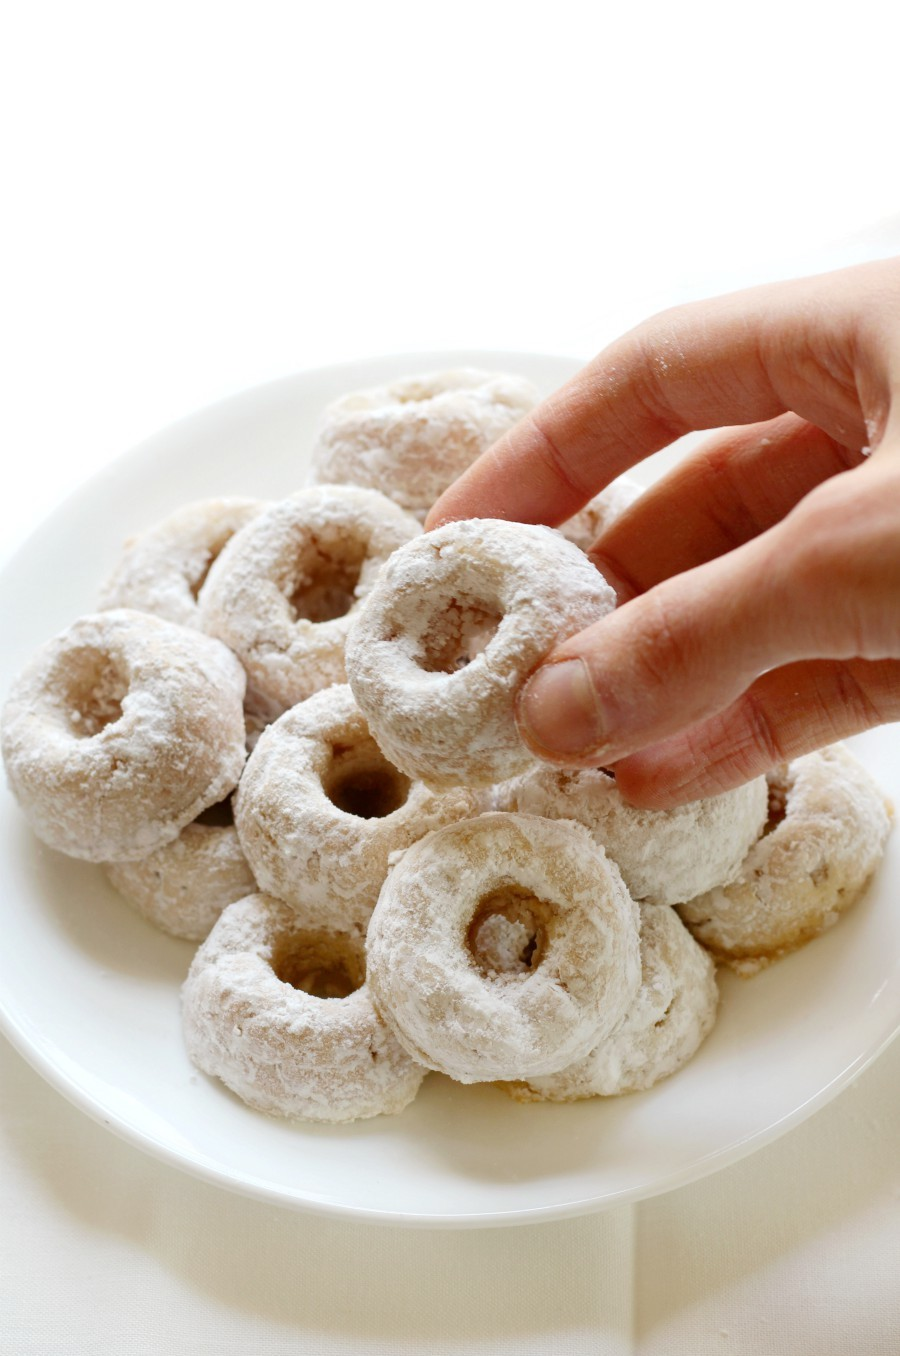 hand-grab-mini-powdered-doughnut-from-white-plate-pile